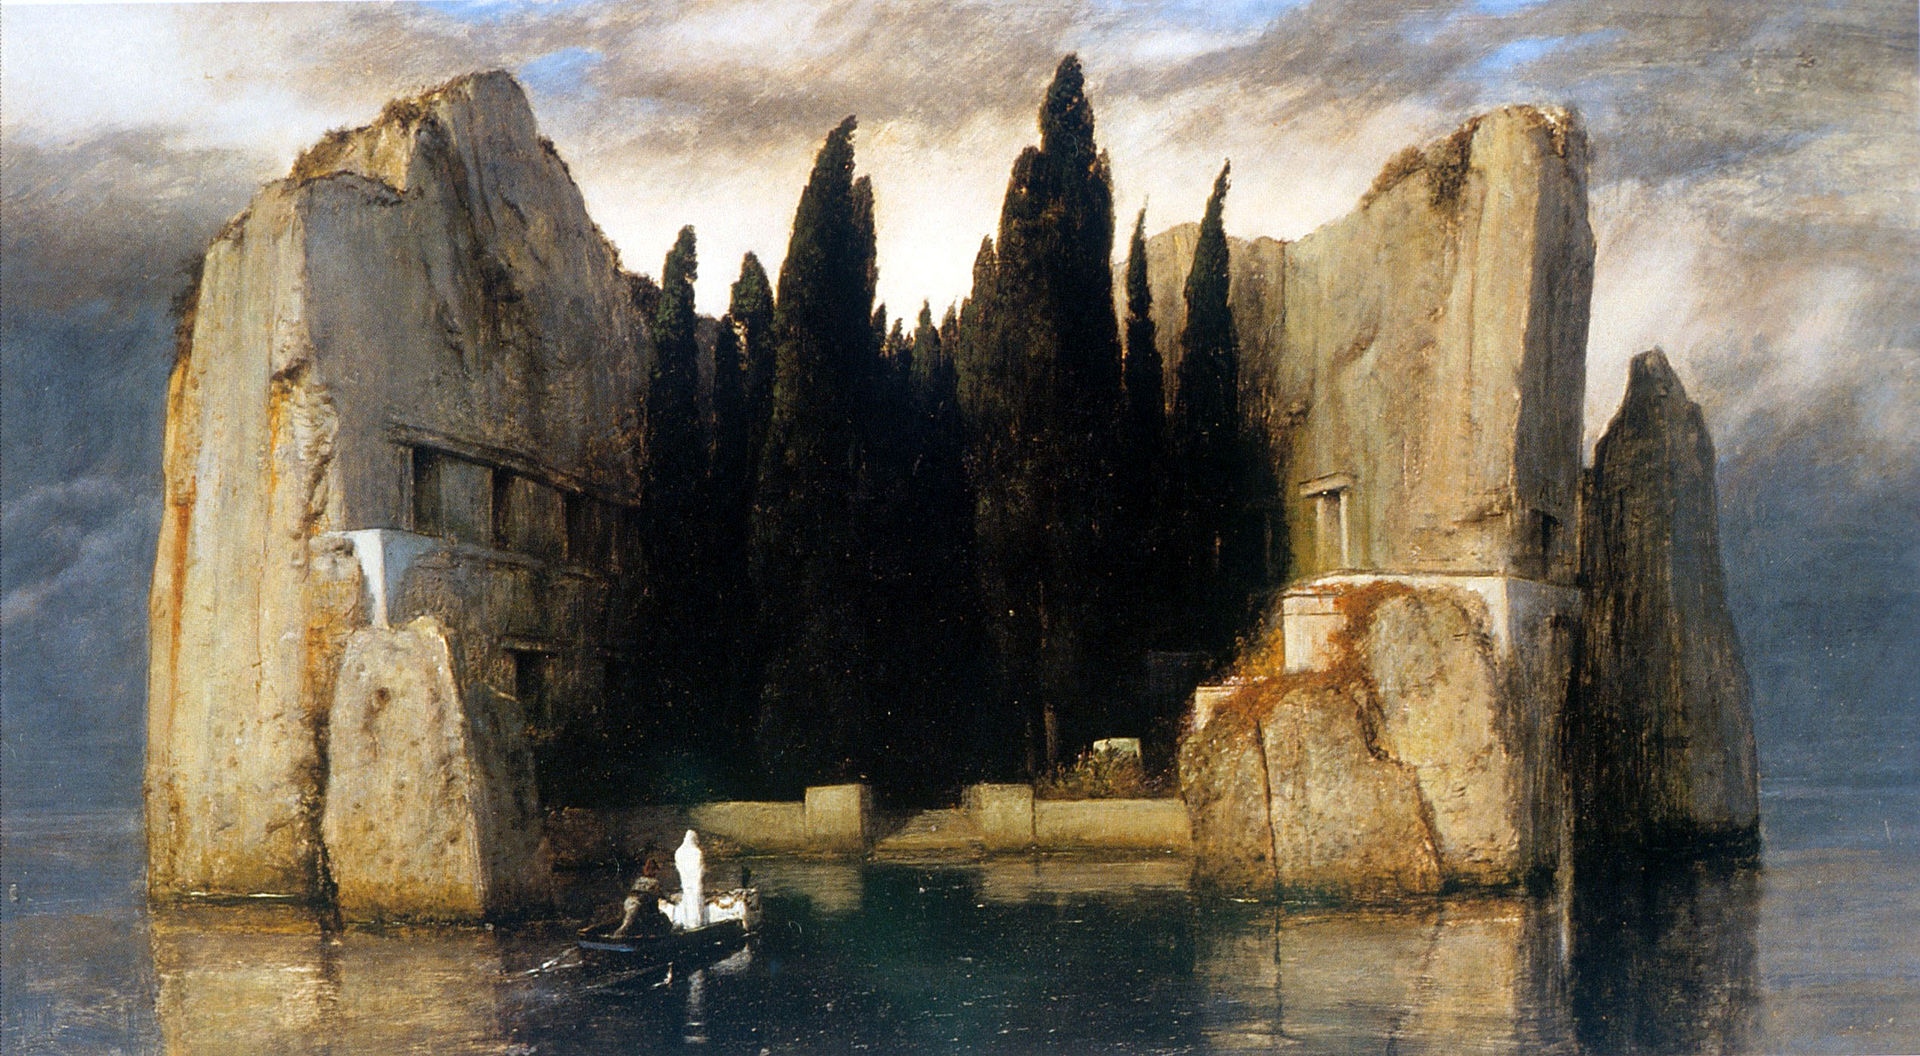 https://upload.wikimedia.org/wikipedia/commons/thumb/0/0b/Arnold_Boecklin_-_Island_of_the_Dead%2C_Third_Version.JPG/1920px-Arnold_Boecklin_-_Island_of_the_Dead%2C_Third_Version.JPG